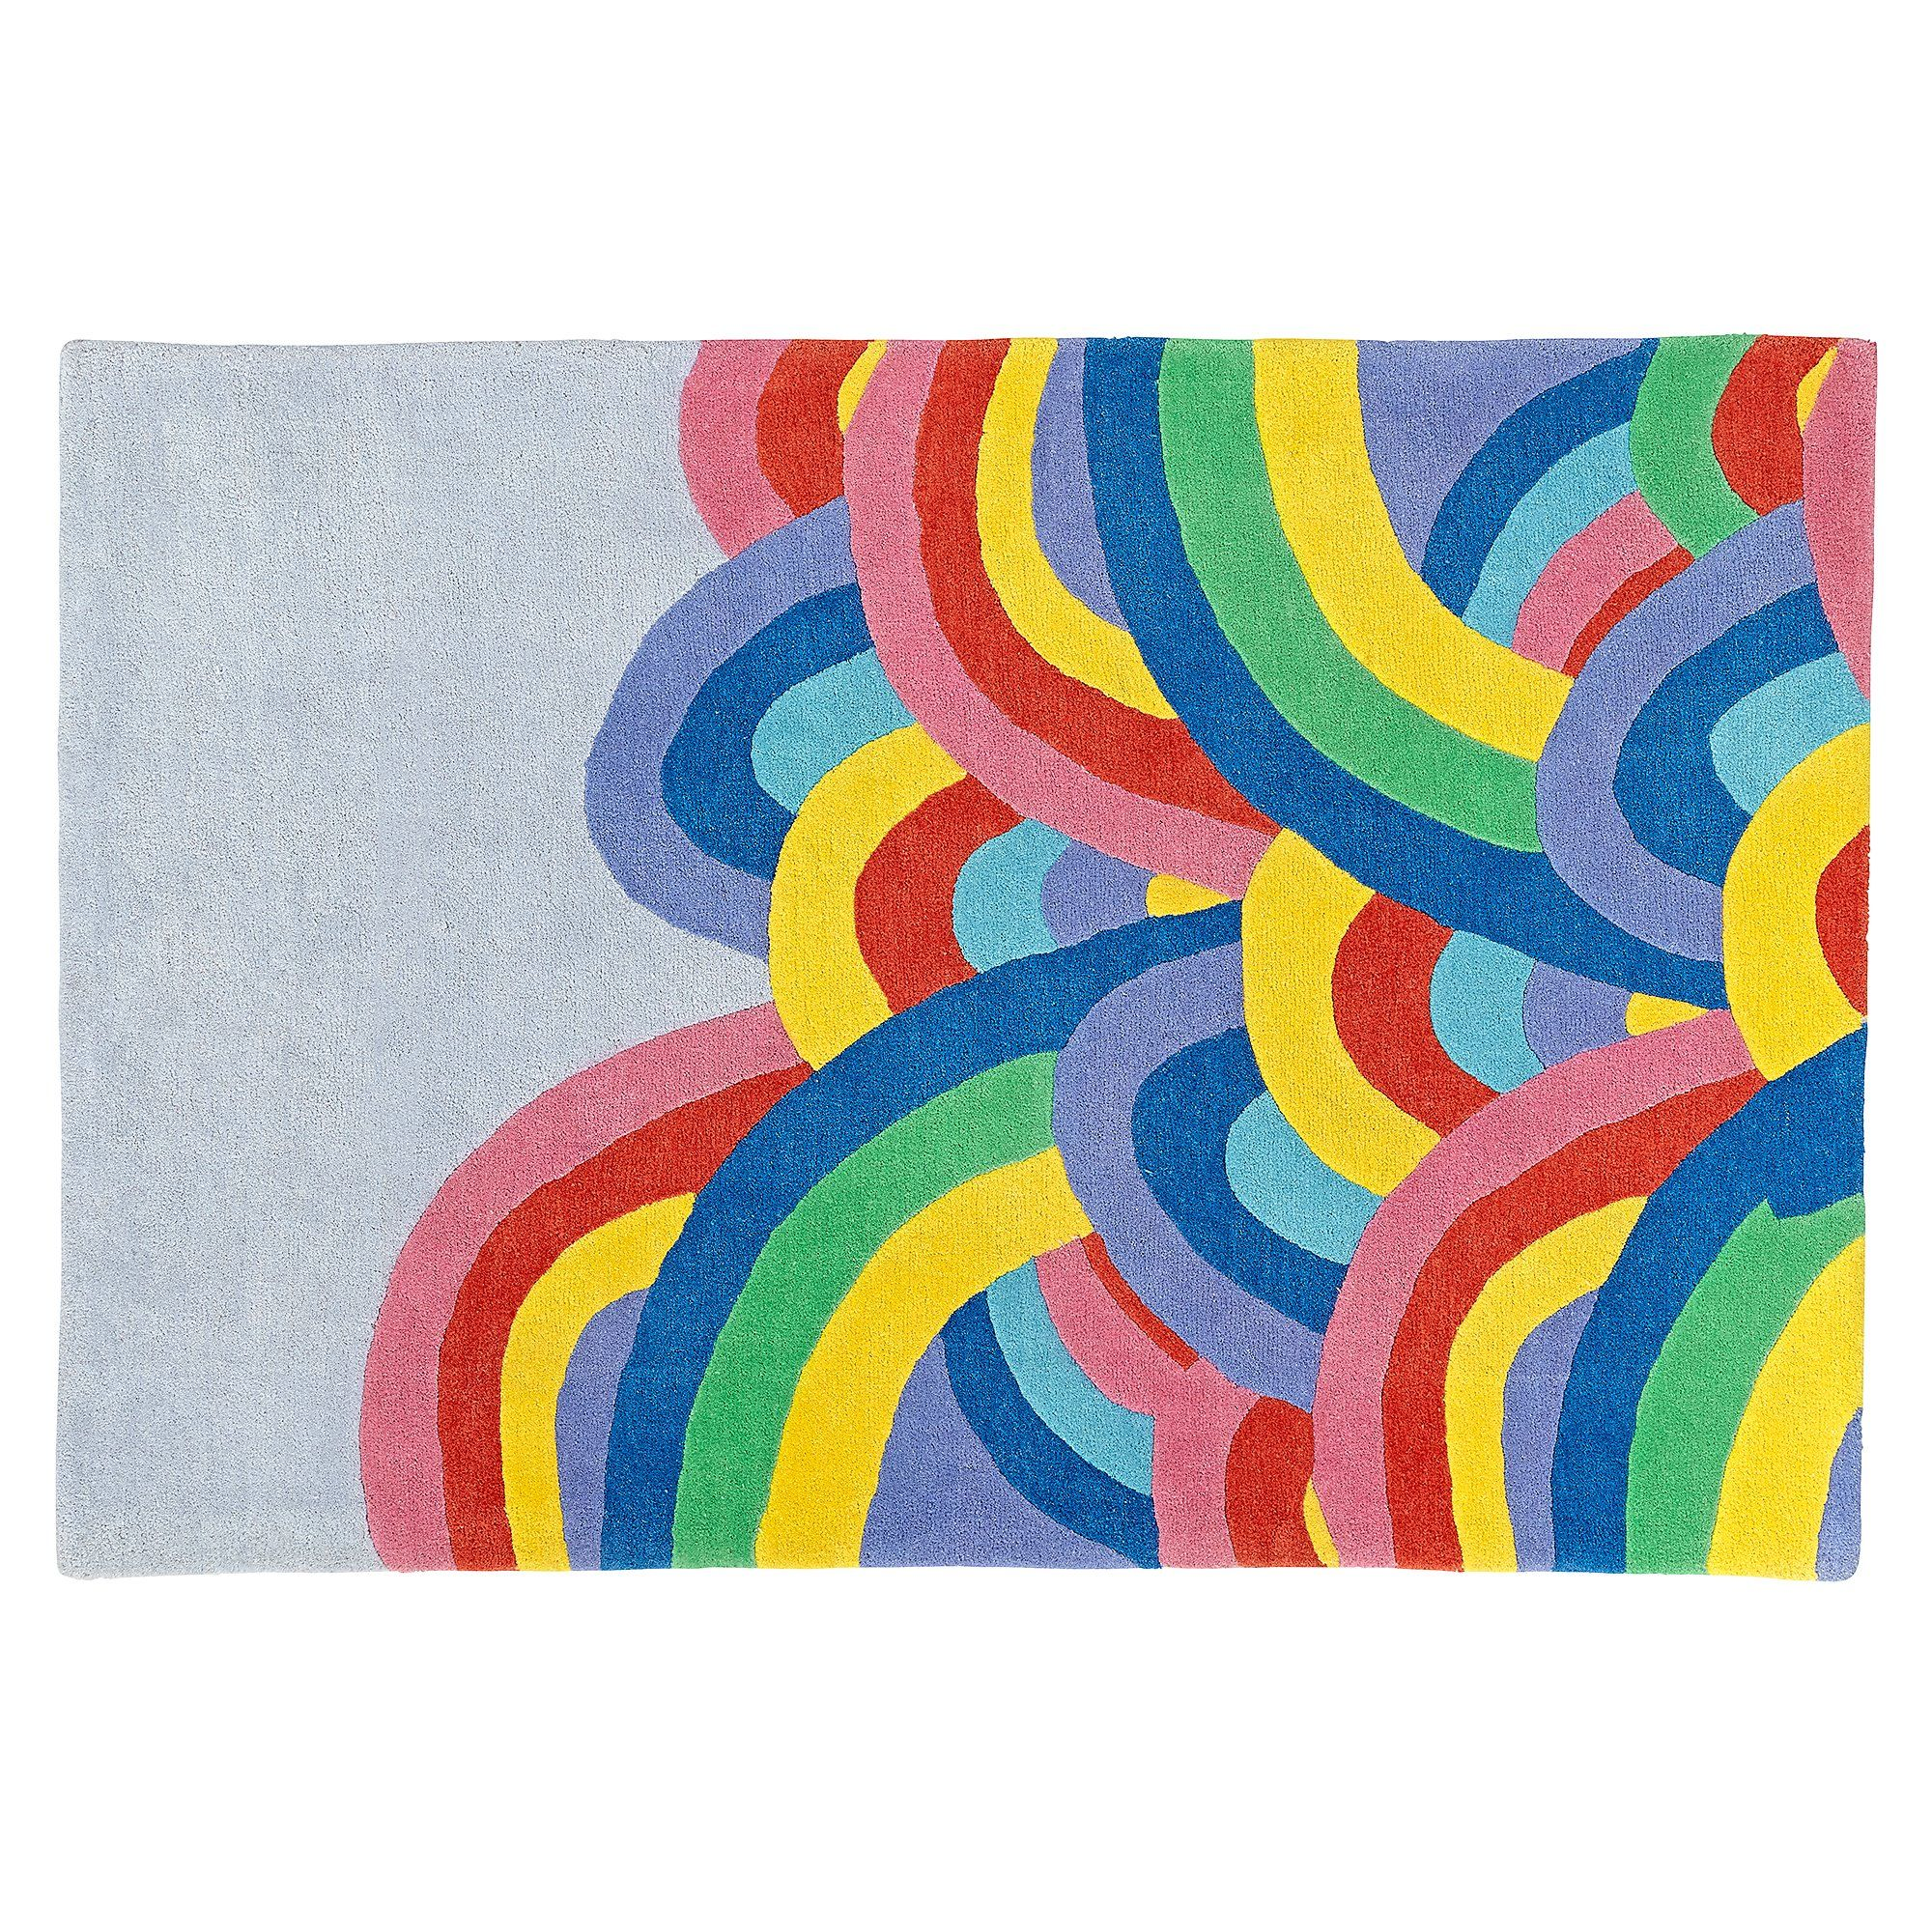 Children's Floor Rugs Over The Rainbow 4 X 6 Rug The Land Of Nod Kids Rug Kids